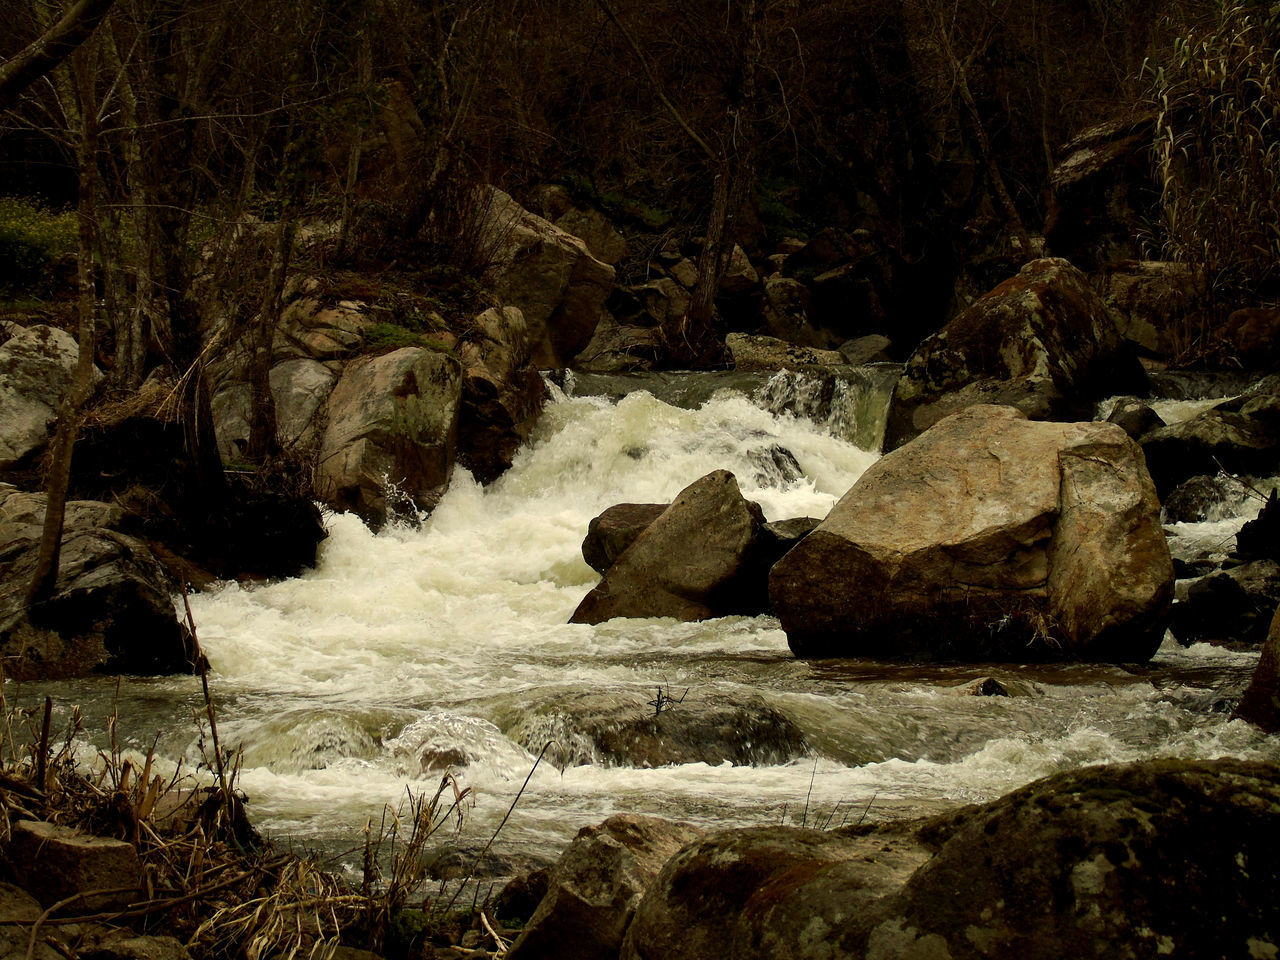 rock - object, rock, nature, no people, outdoors, tranquility, beauty in nature, forest, motion, water, day, waterfall